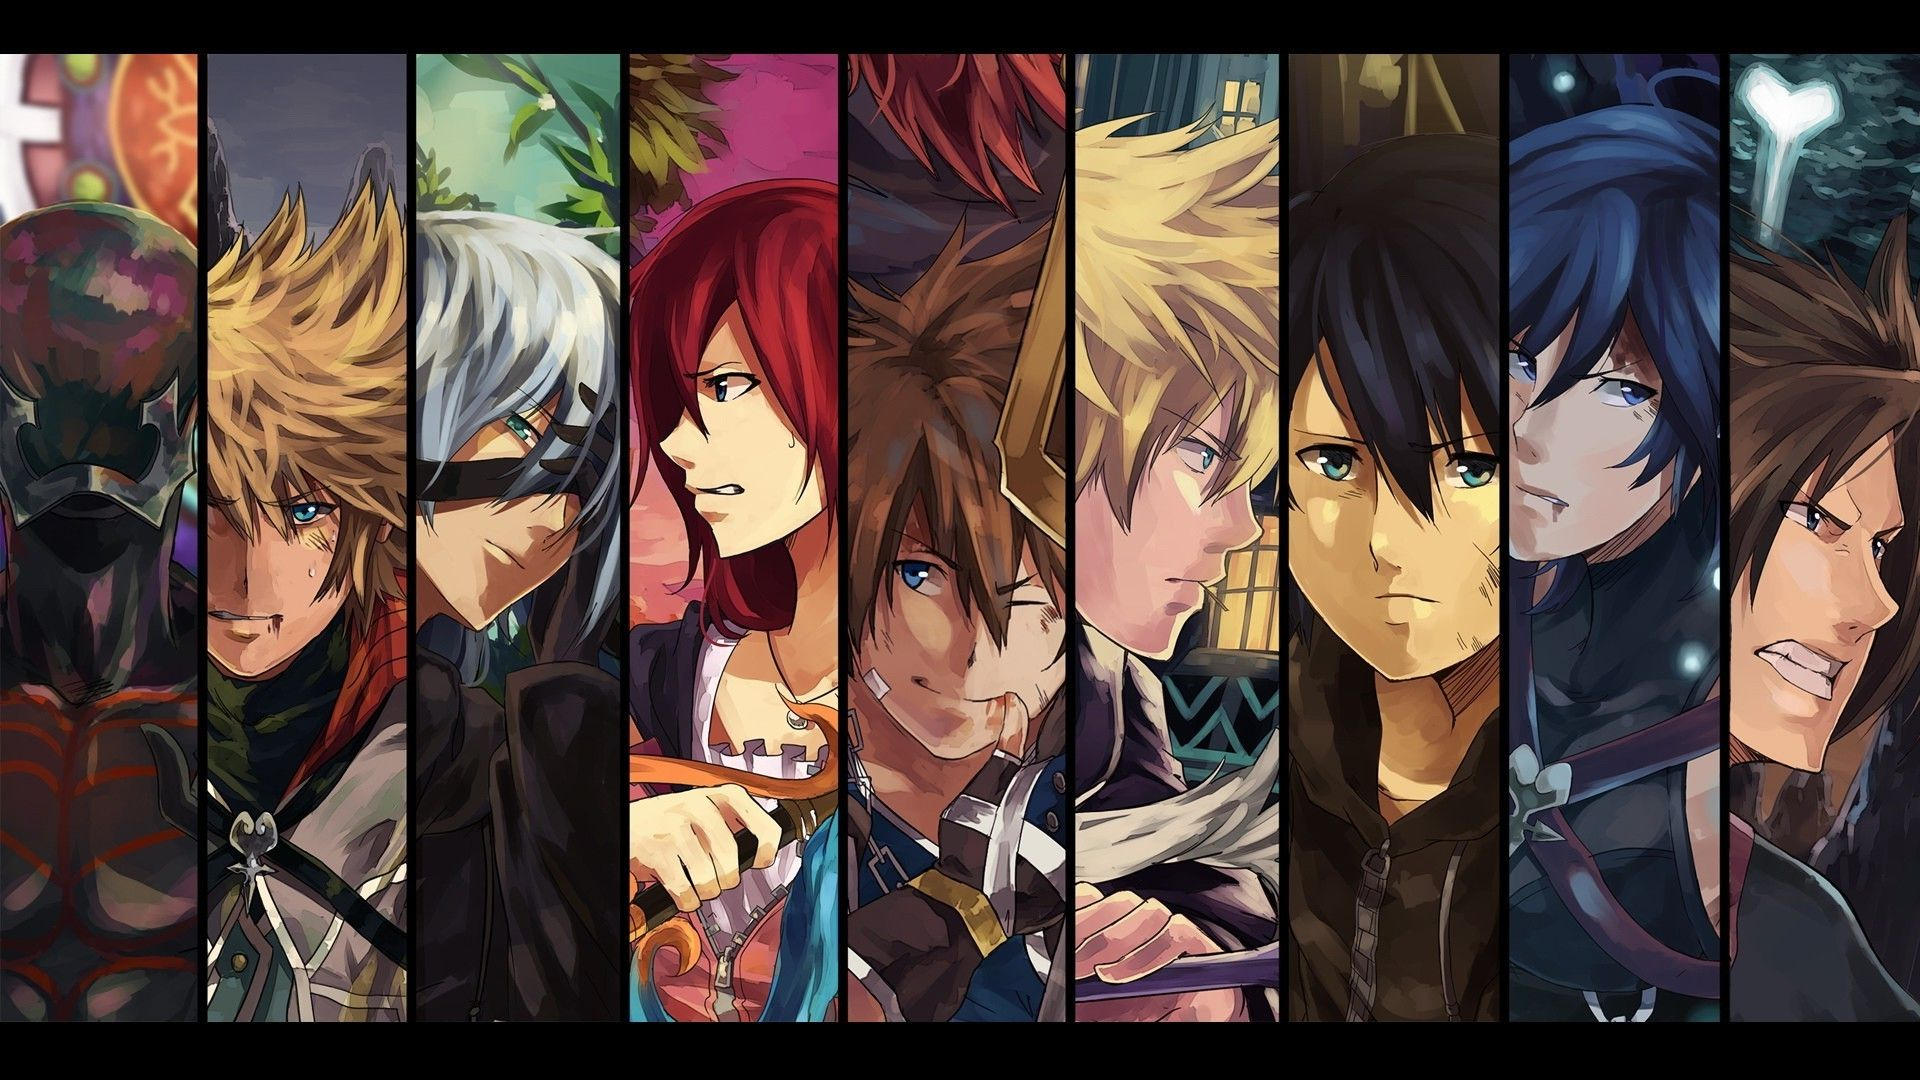 Kingdom Hearts Wallpaper 4834 Kingdom hearts!!!